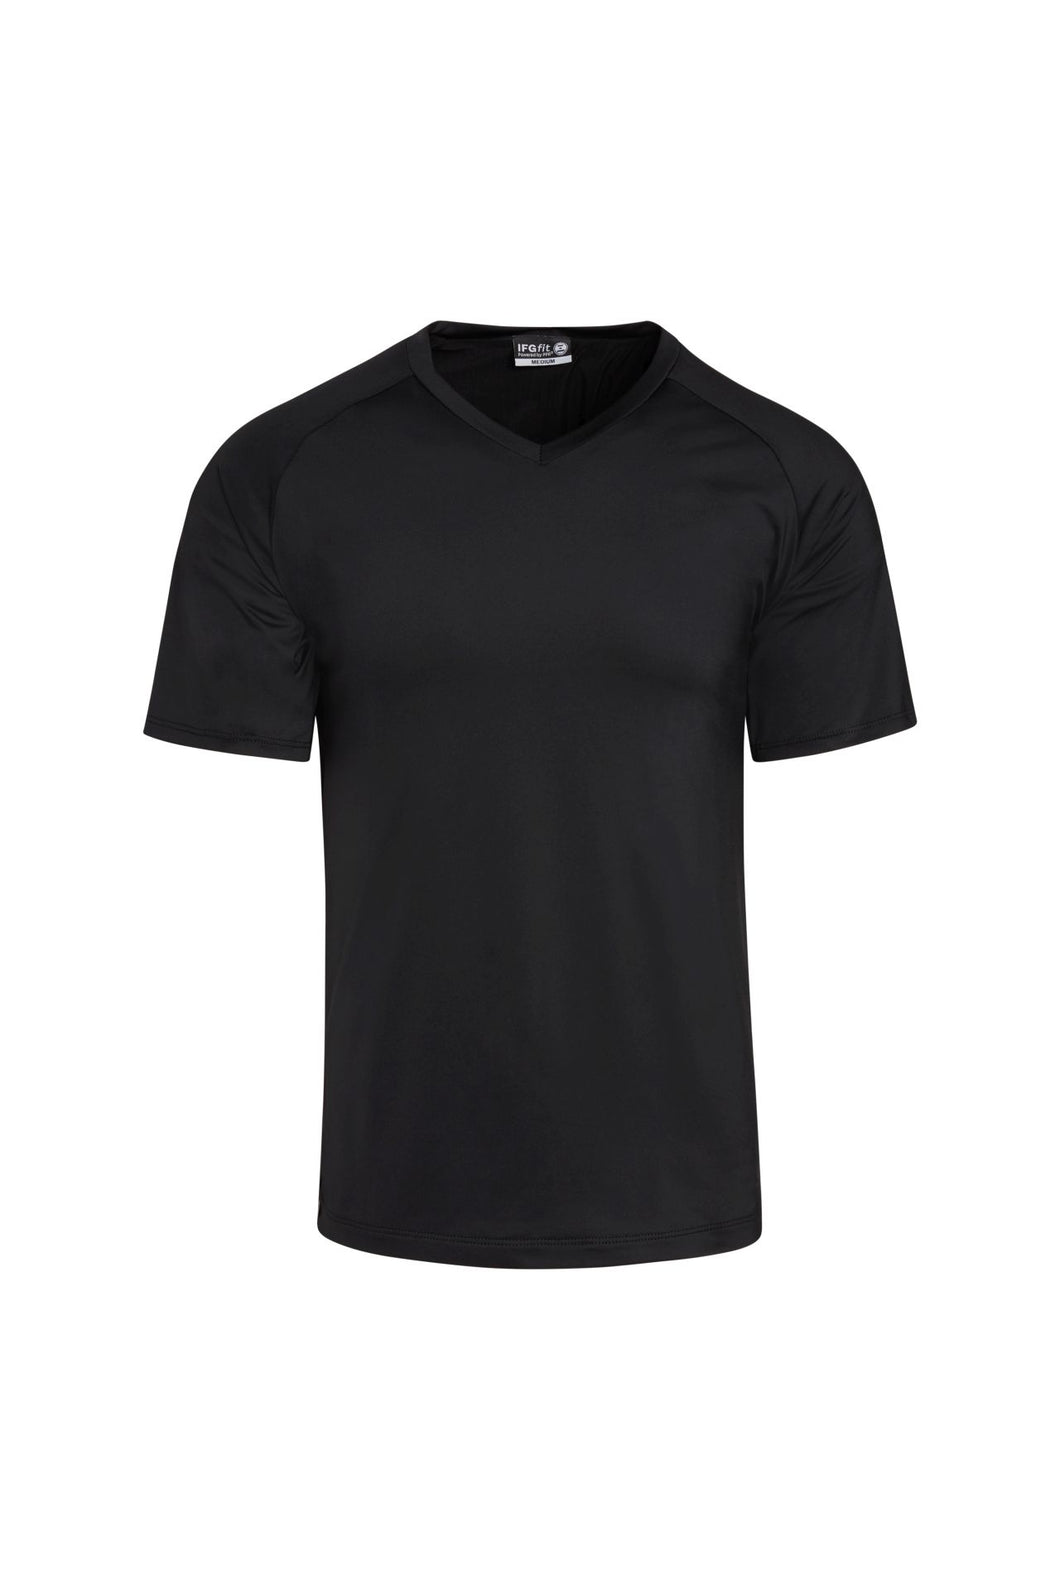 Men's Jersey V-Neck Posture Shirt